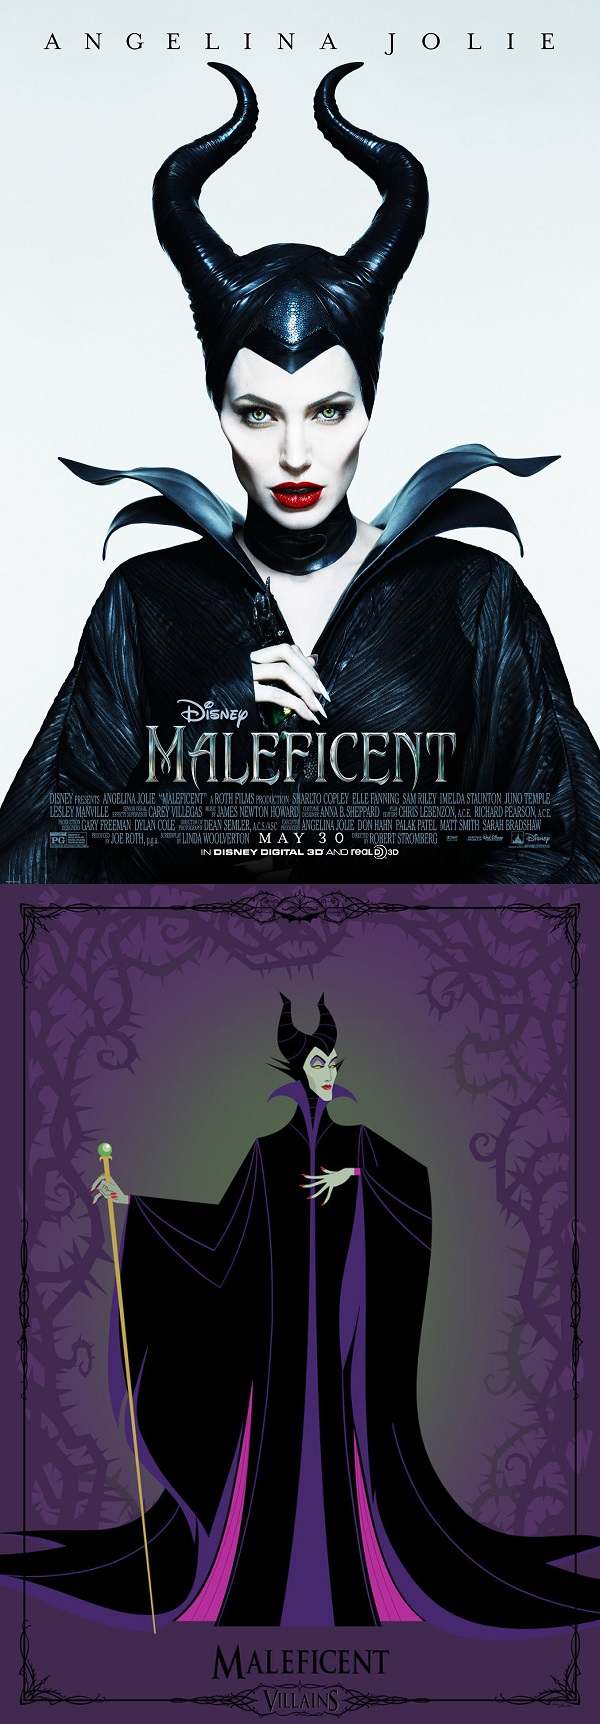 Maleficent (2014) Directed by: Robert Stromberg - Movie Review - Image 3